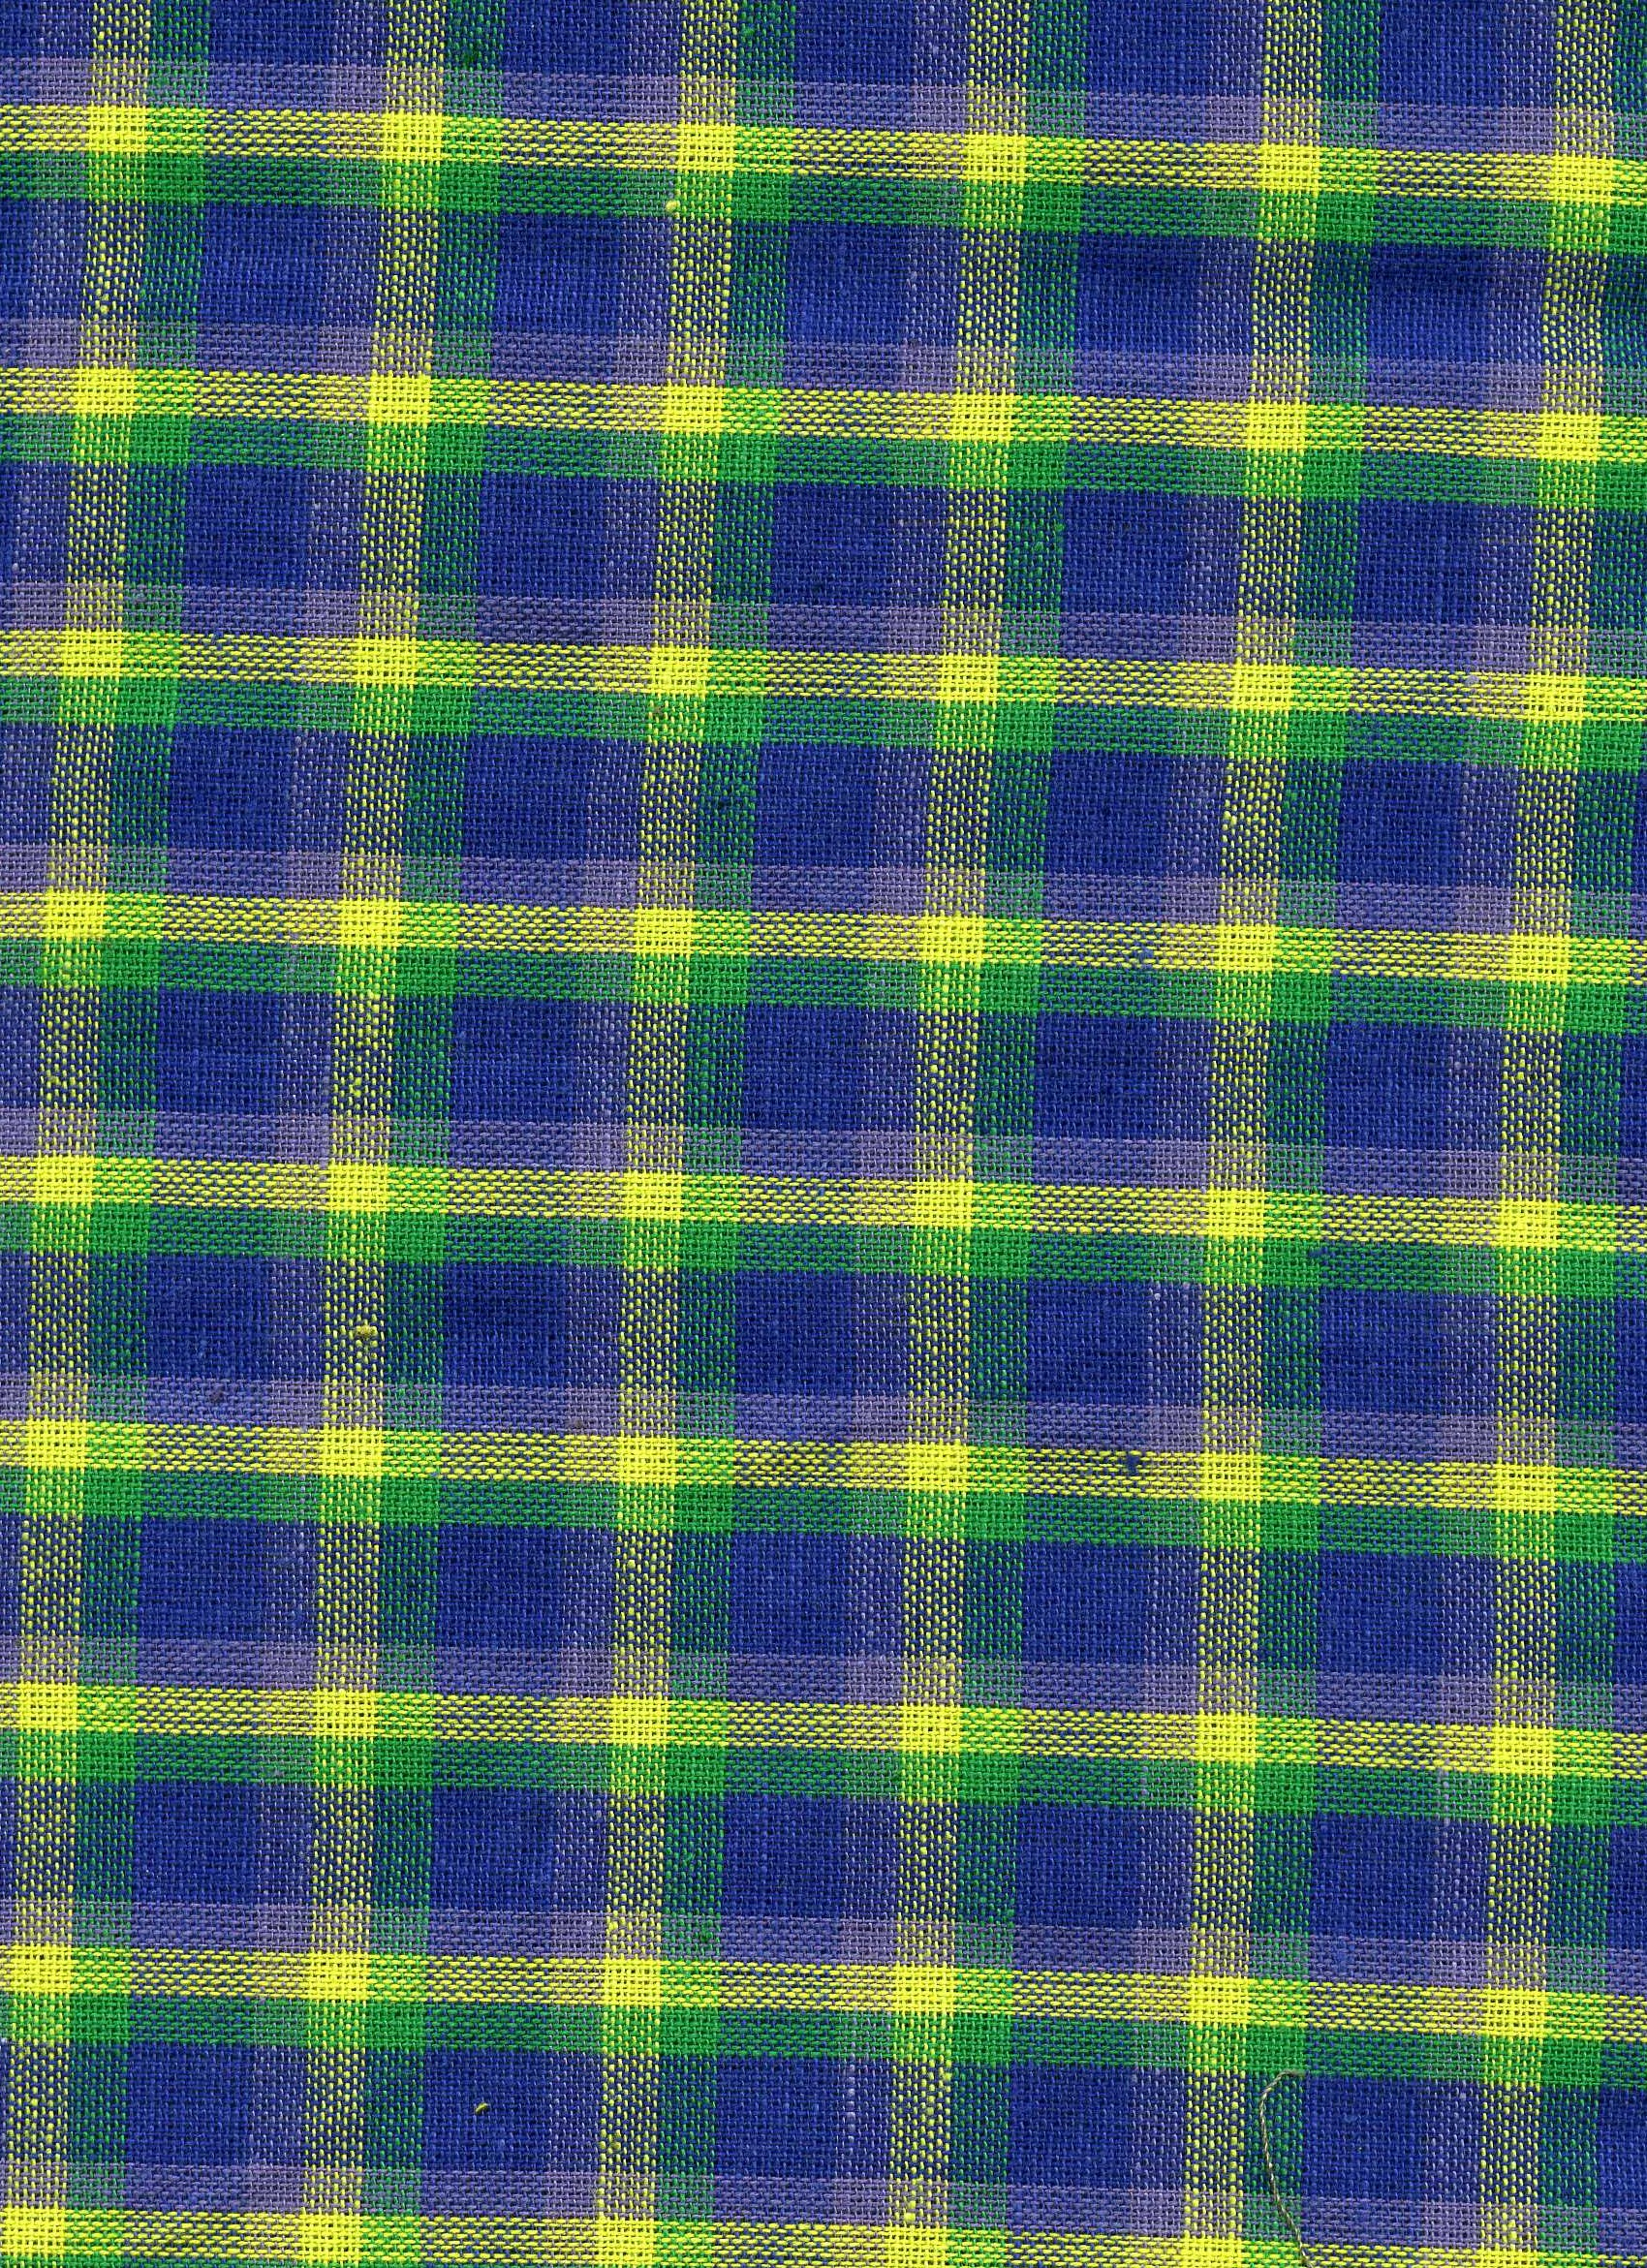 Blue/Green/Yellow Plaid